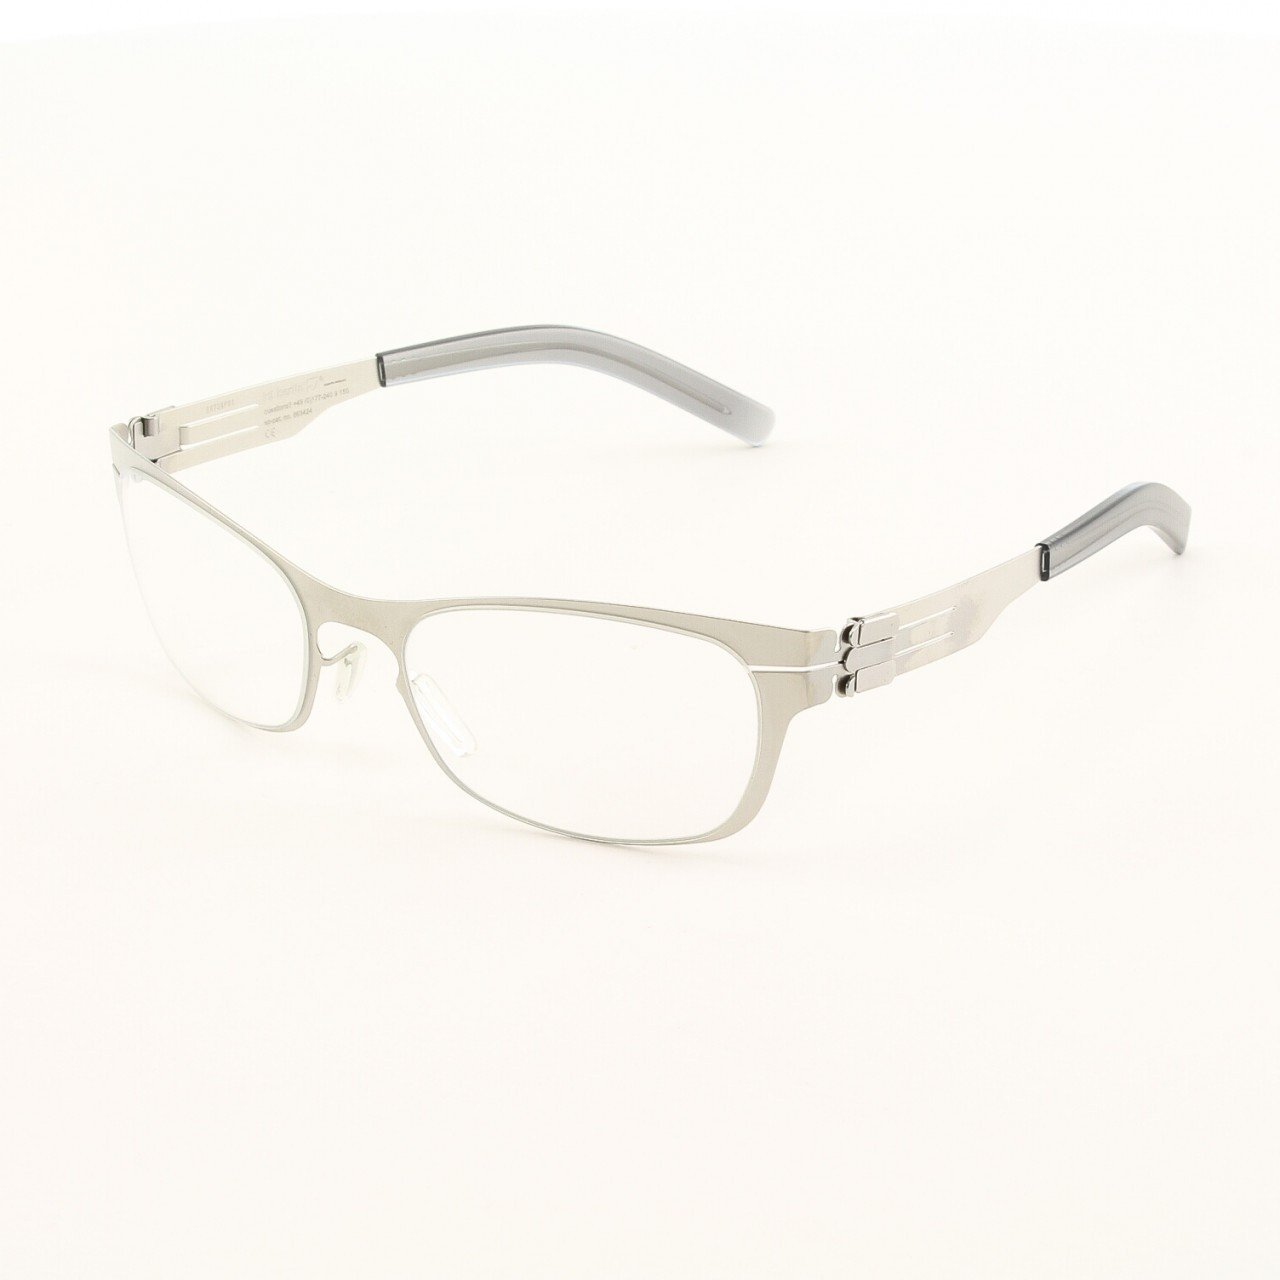 ic! Berlin Charmante Eyeglasses Col. Nickle with Clear Lenses